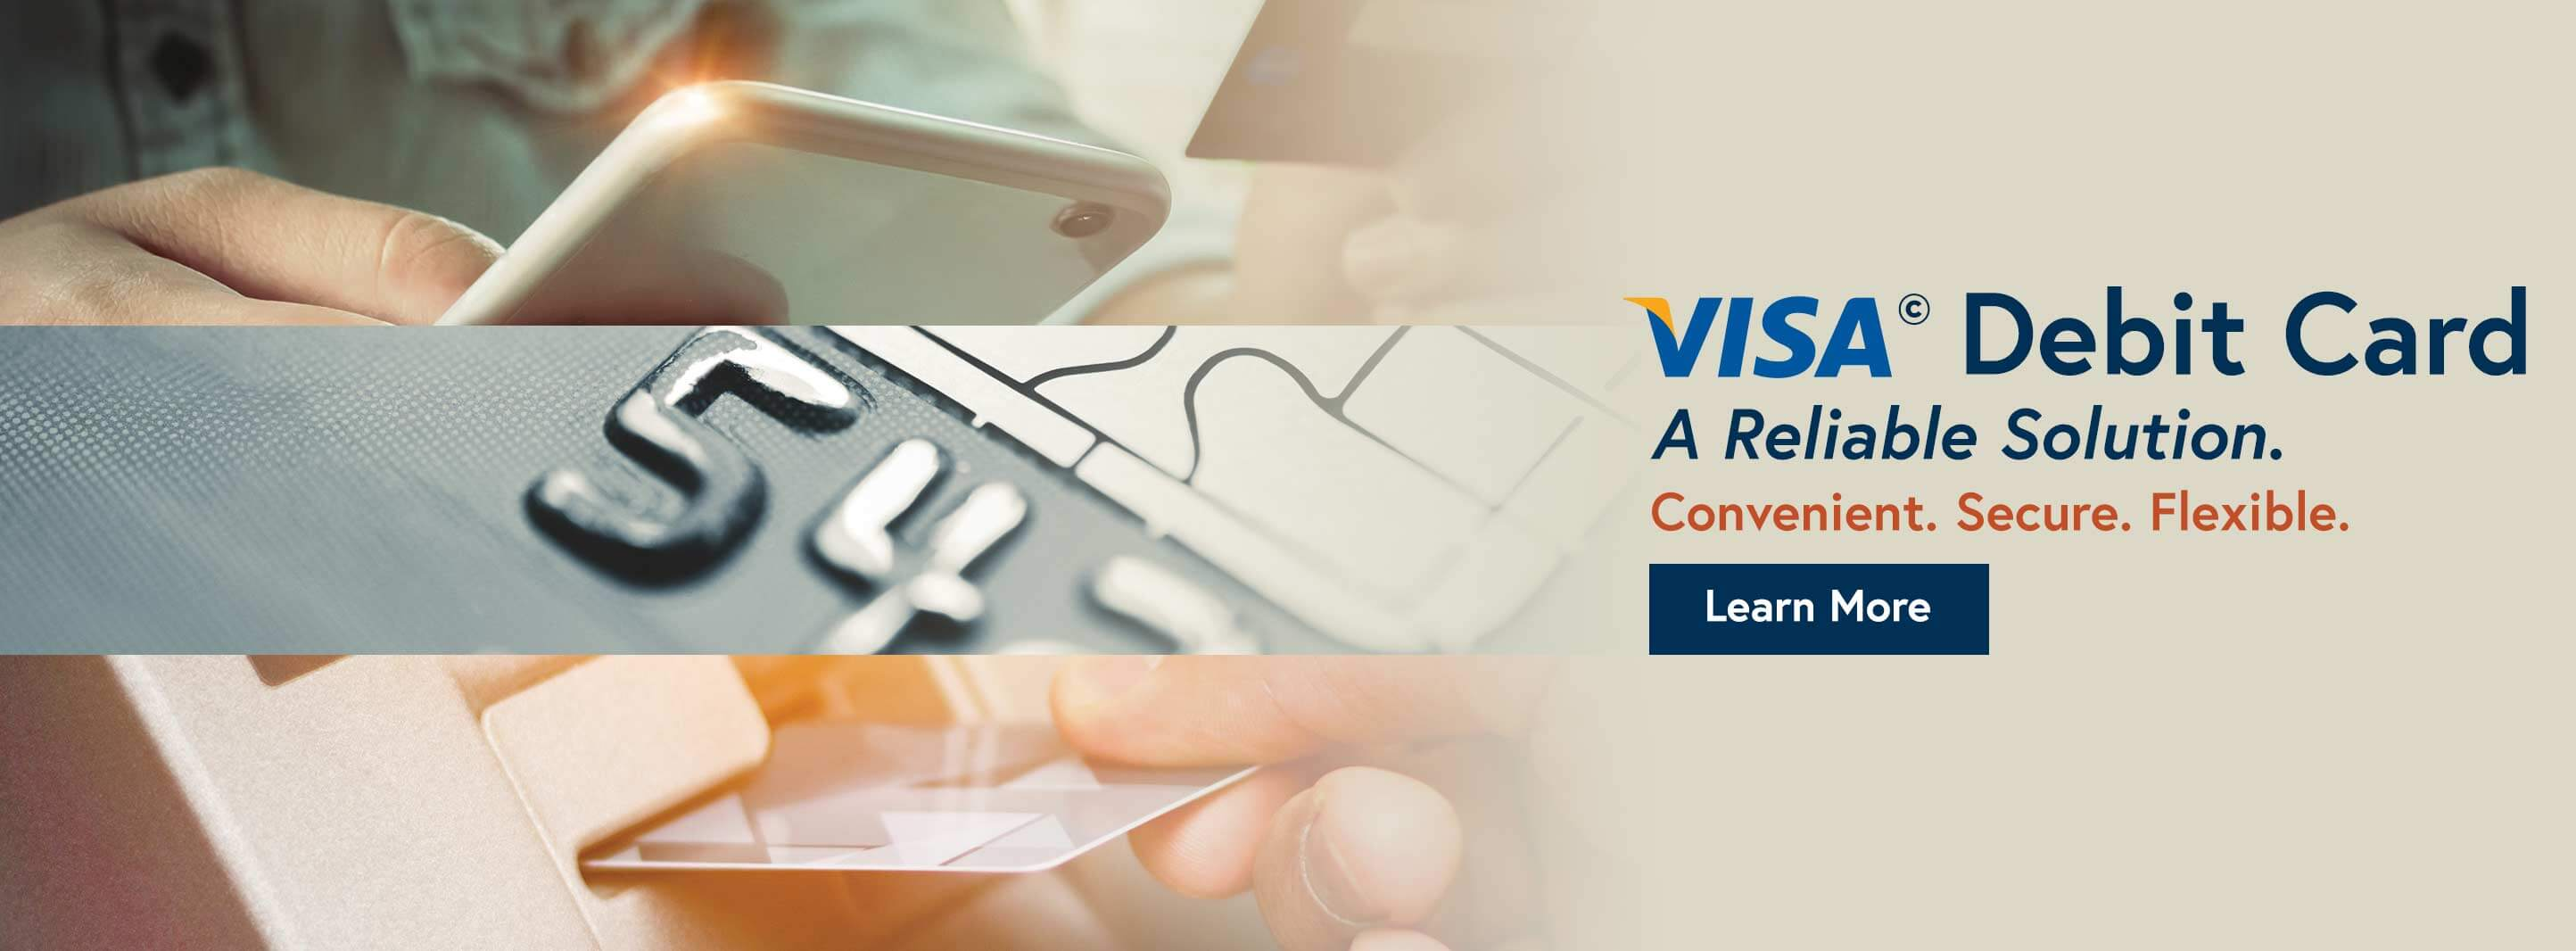 Visa Debit Card - A Reliable Solution. Convenient. Secure. Flexible. Click to Learn More.